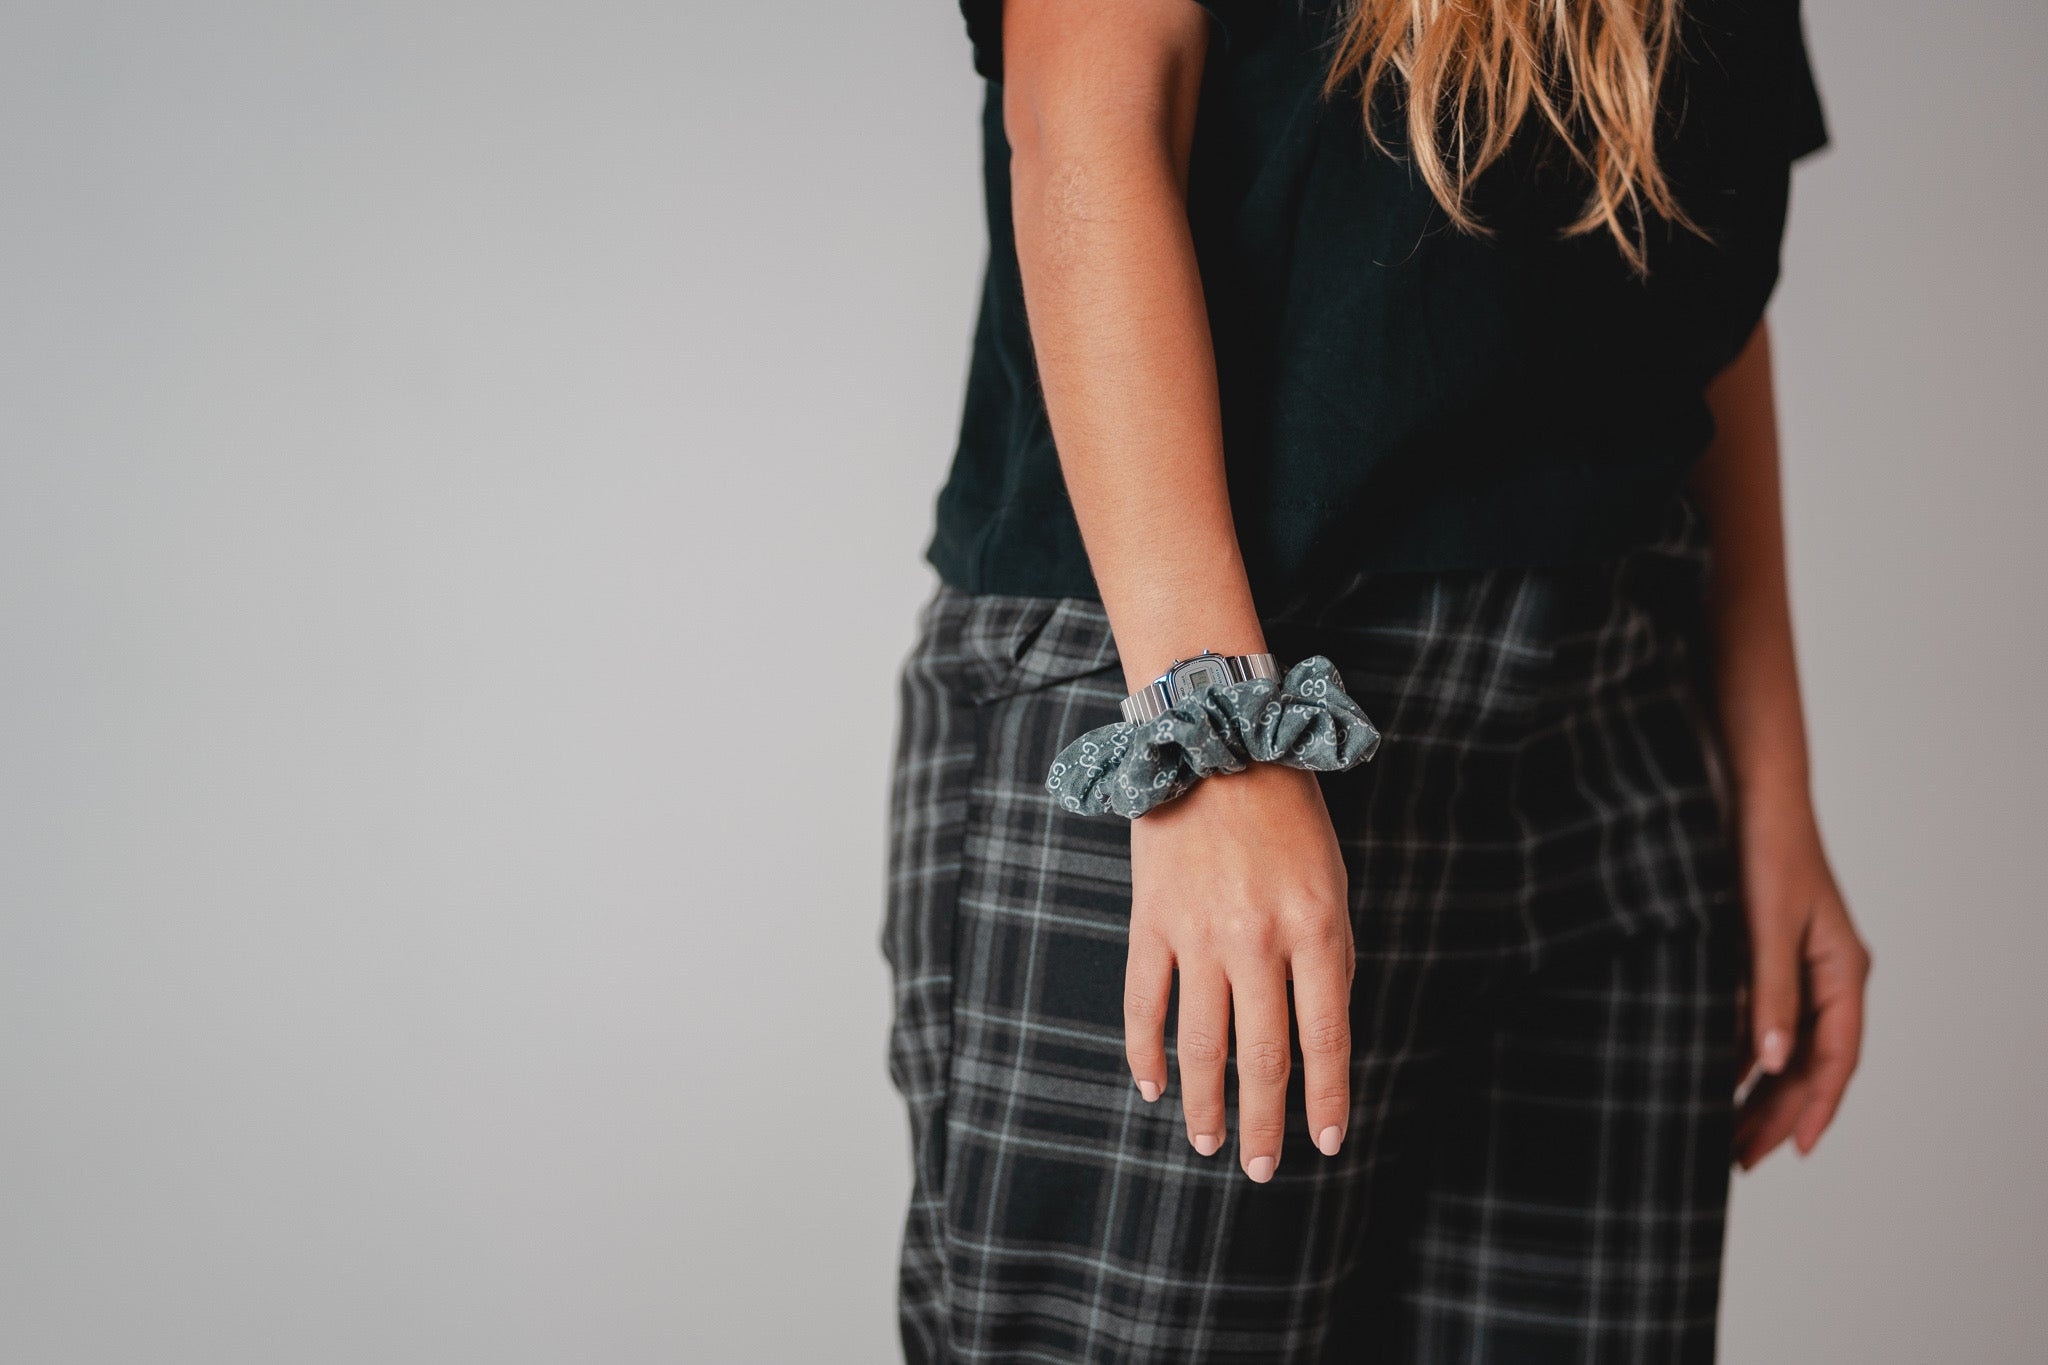 Young Girl Wearing Black Gucci Scrunchie On Wrist